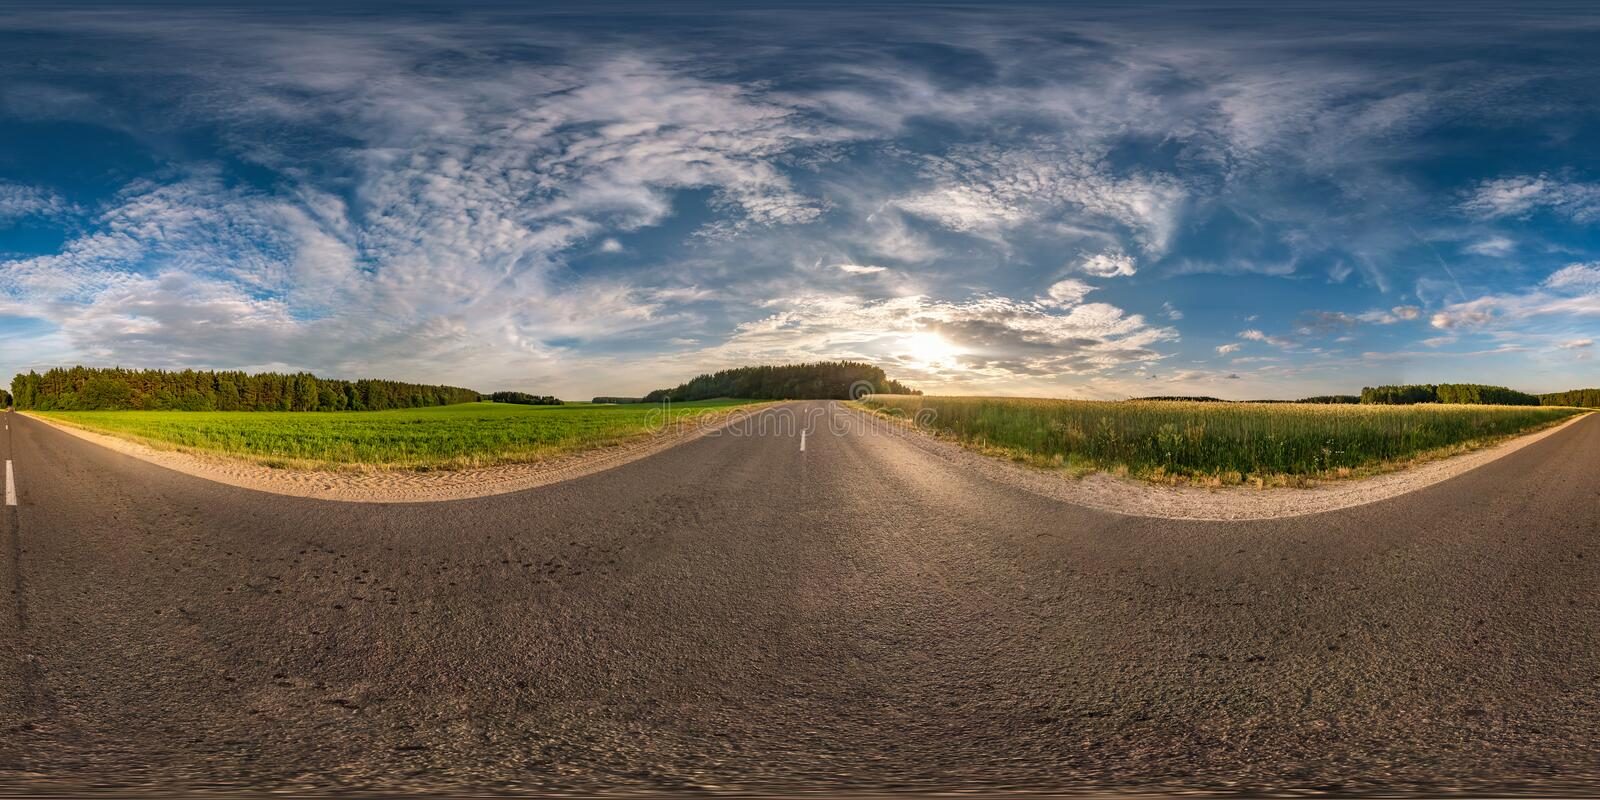 Spherical hdri panorama 360 degrees angle view on asphalt road among fields in summer evening sunset with awesome clouds in royalty free stock photos